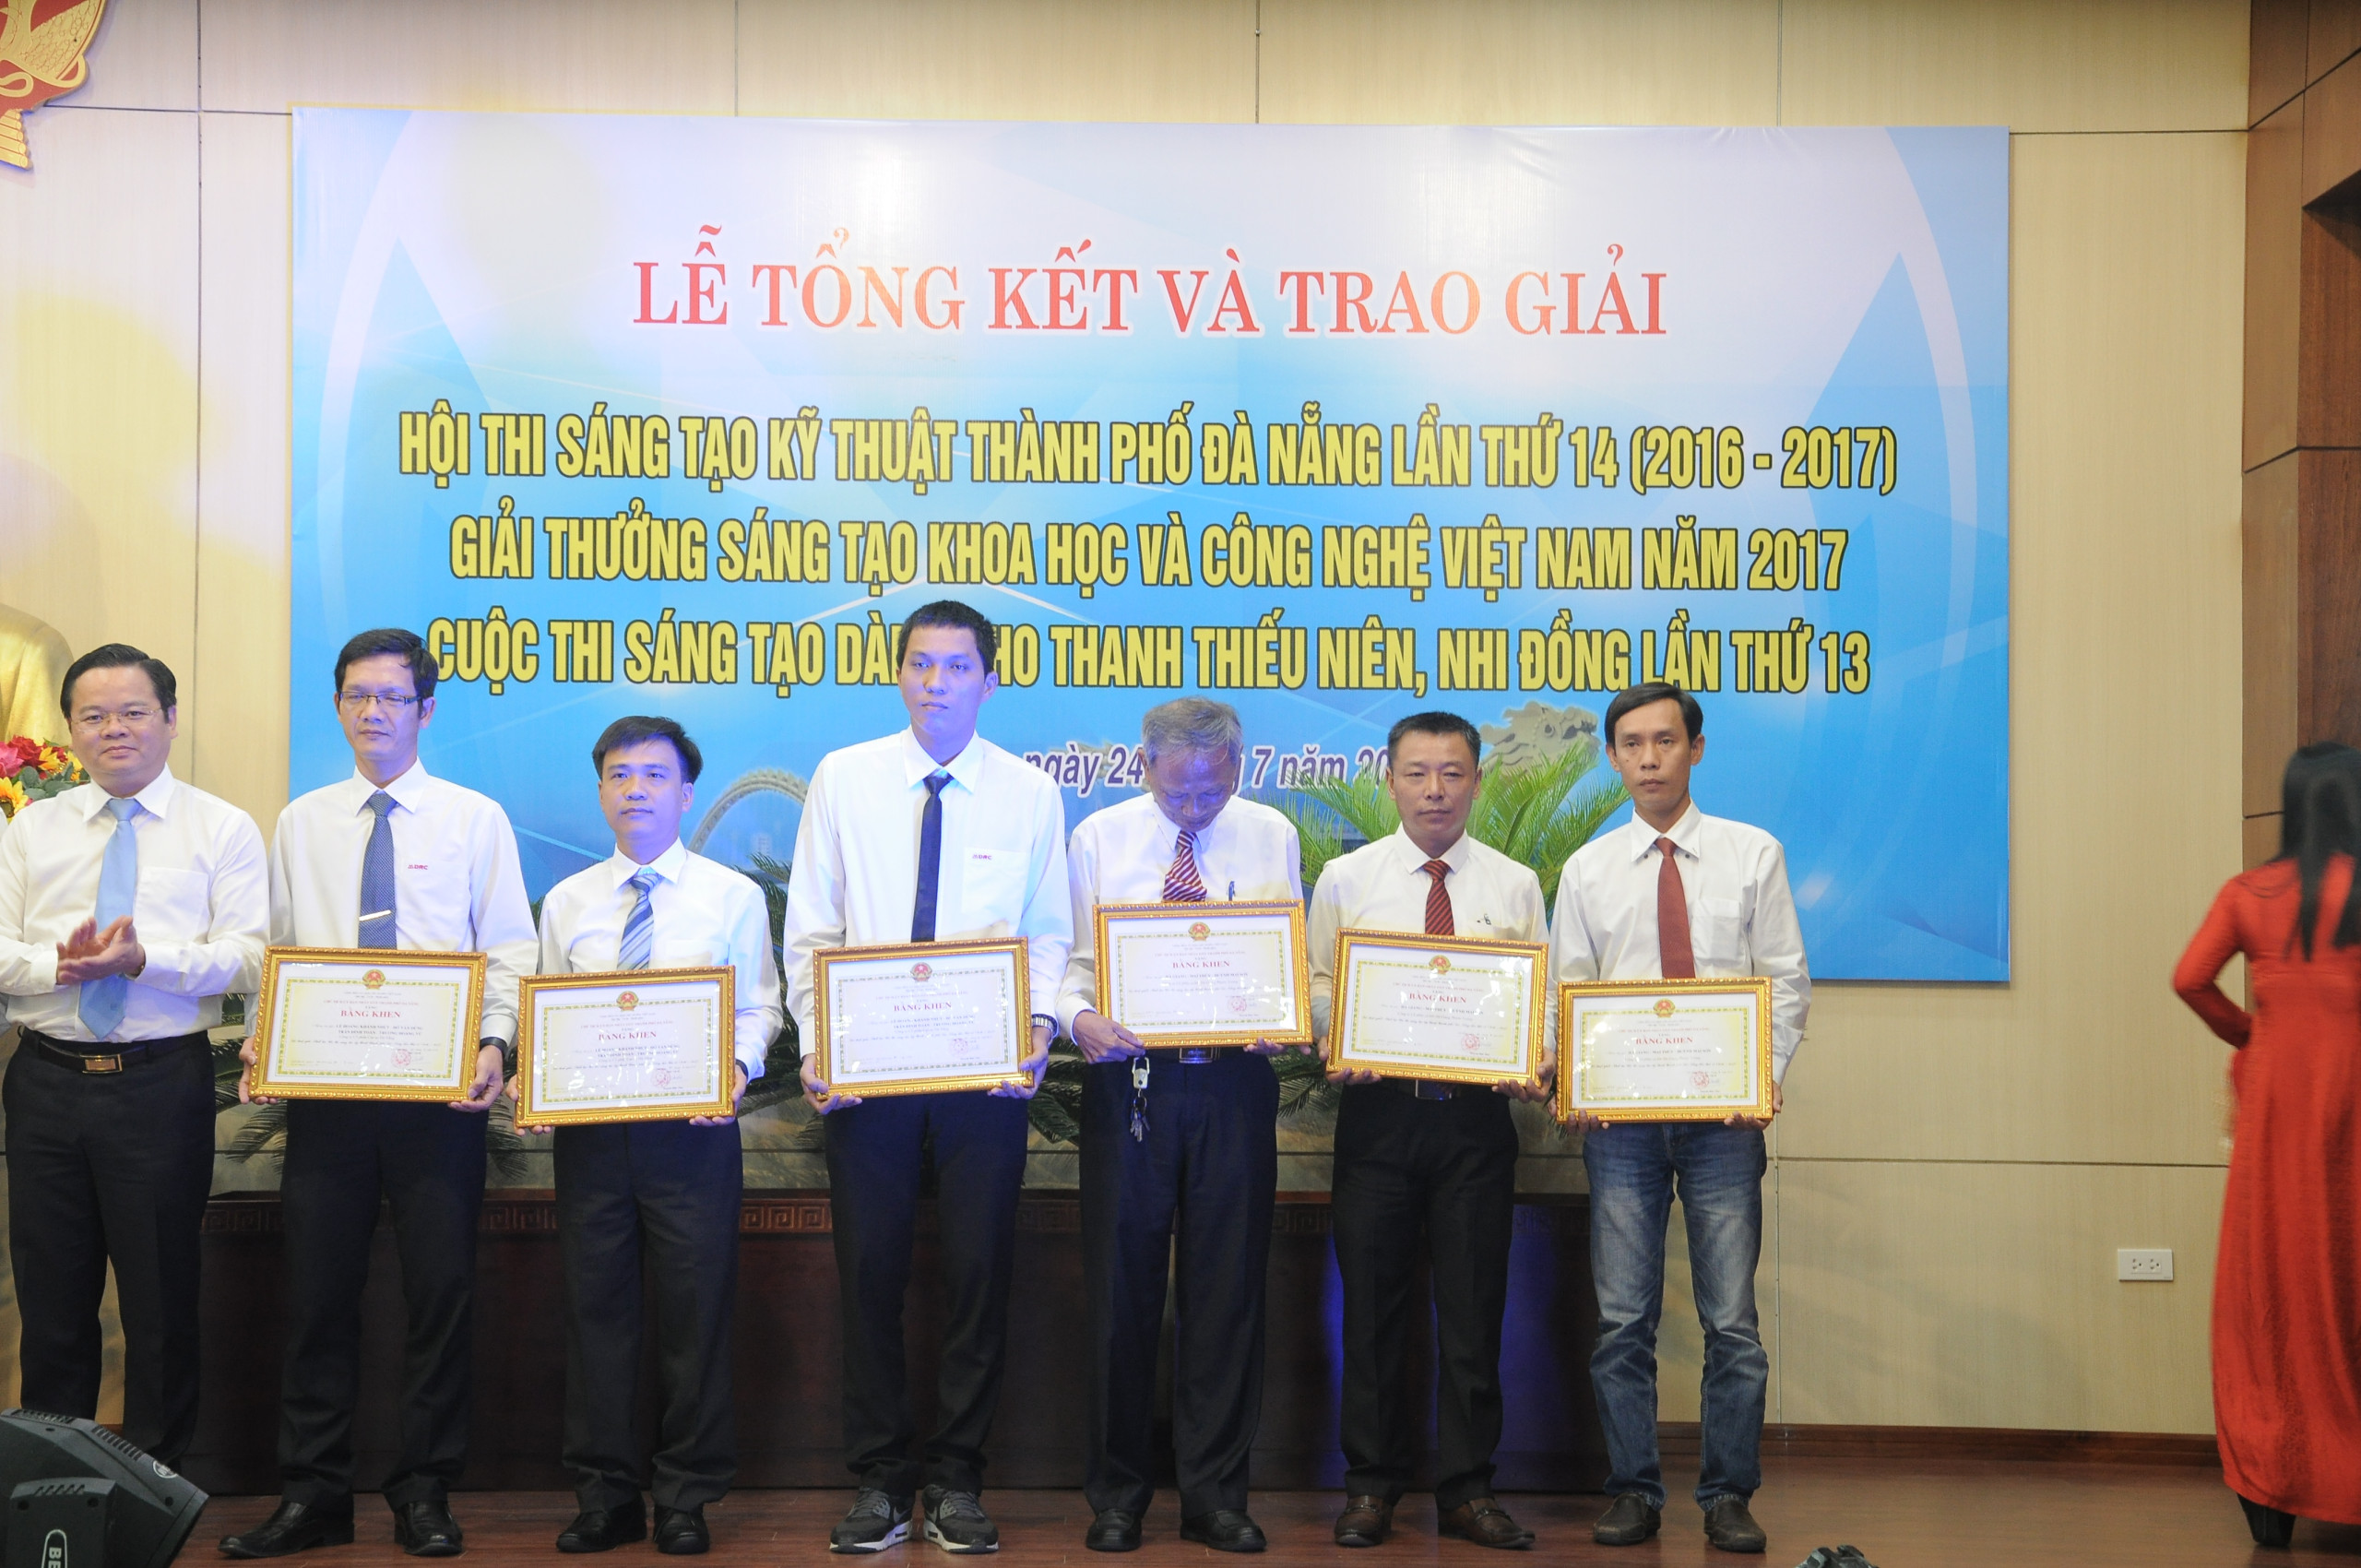 HGPT Mechanical won first prize at the 14th Da Nang Science and Technology Innovation Contest